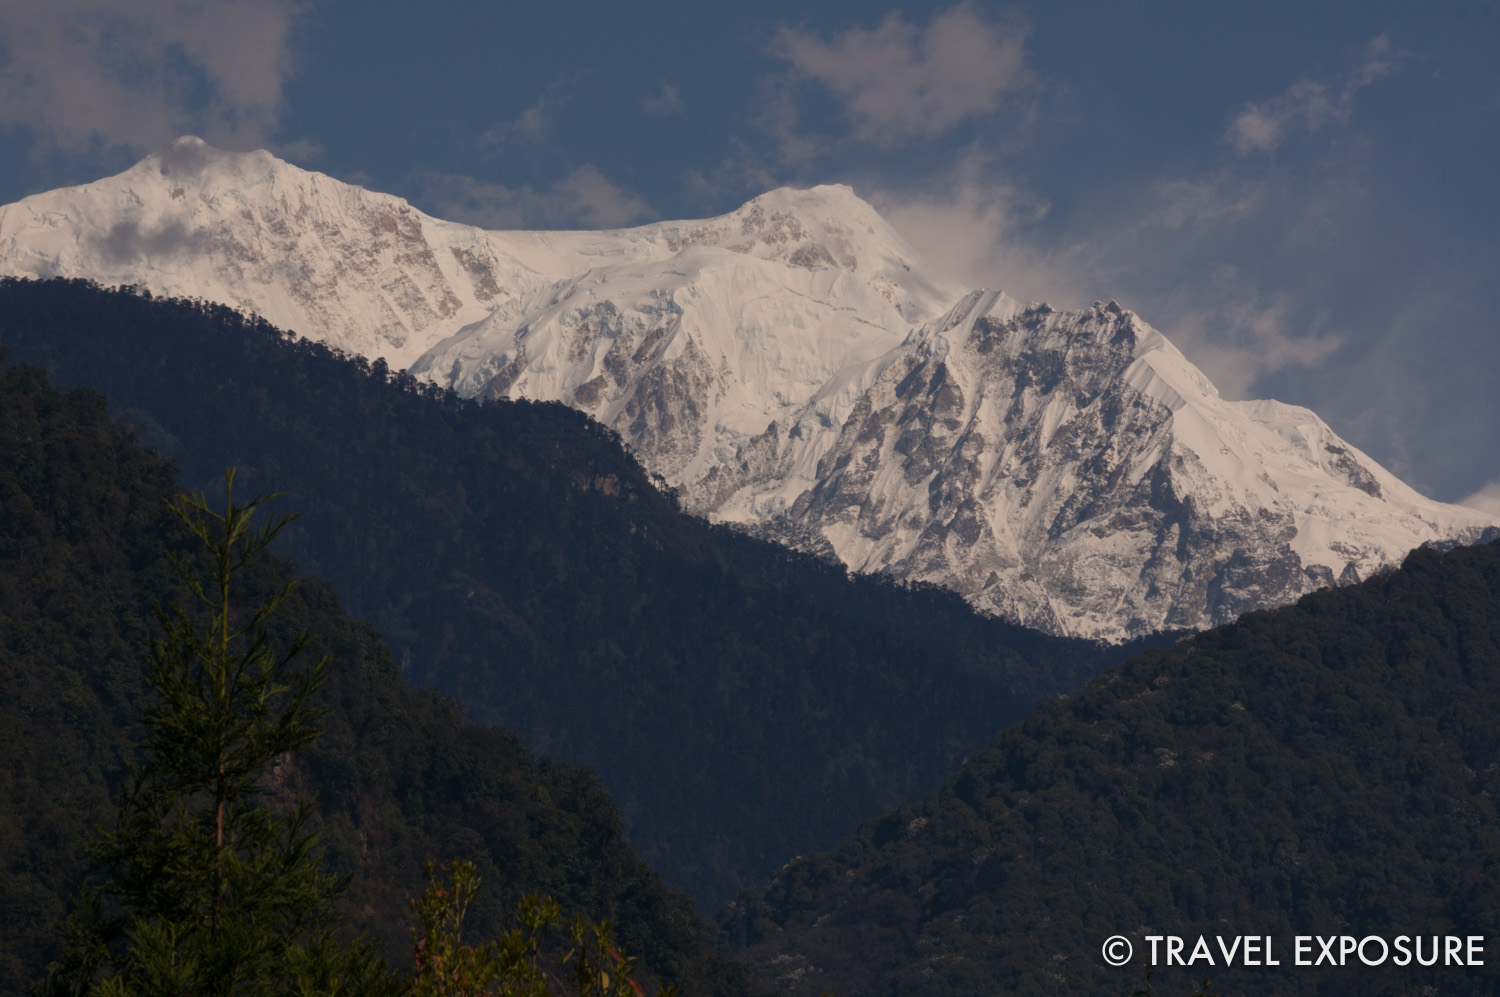 WEEK OF MARCH 17 Mount Kabru, part of the Himalayan range, stands at 24,000 feet on the border of Sikkim, India and eastern Nepal.